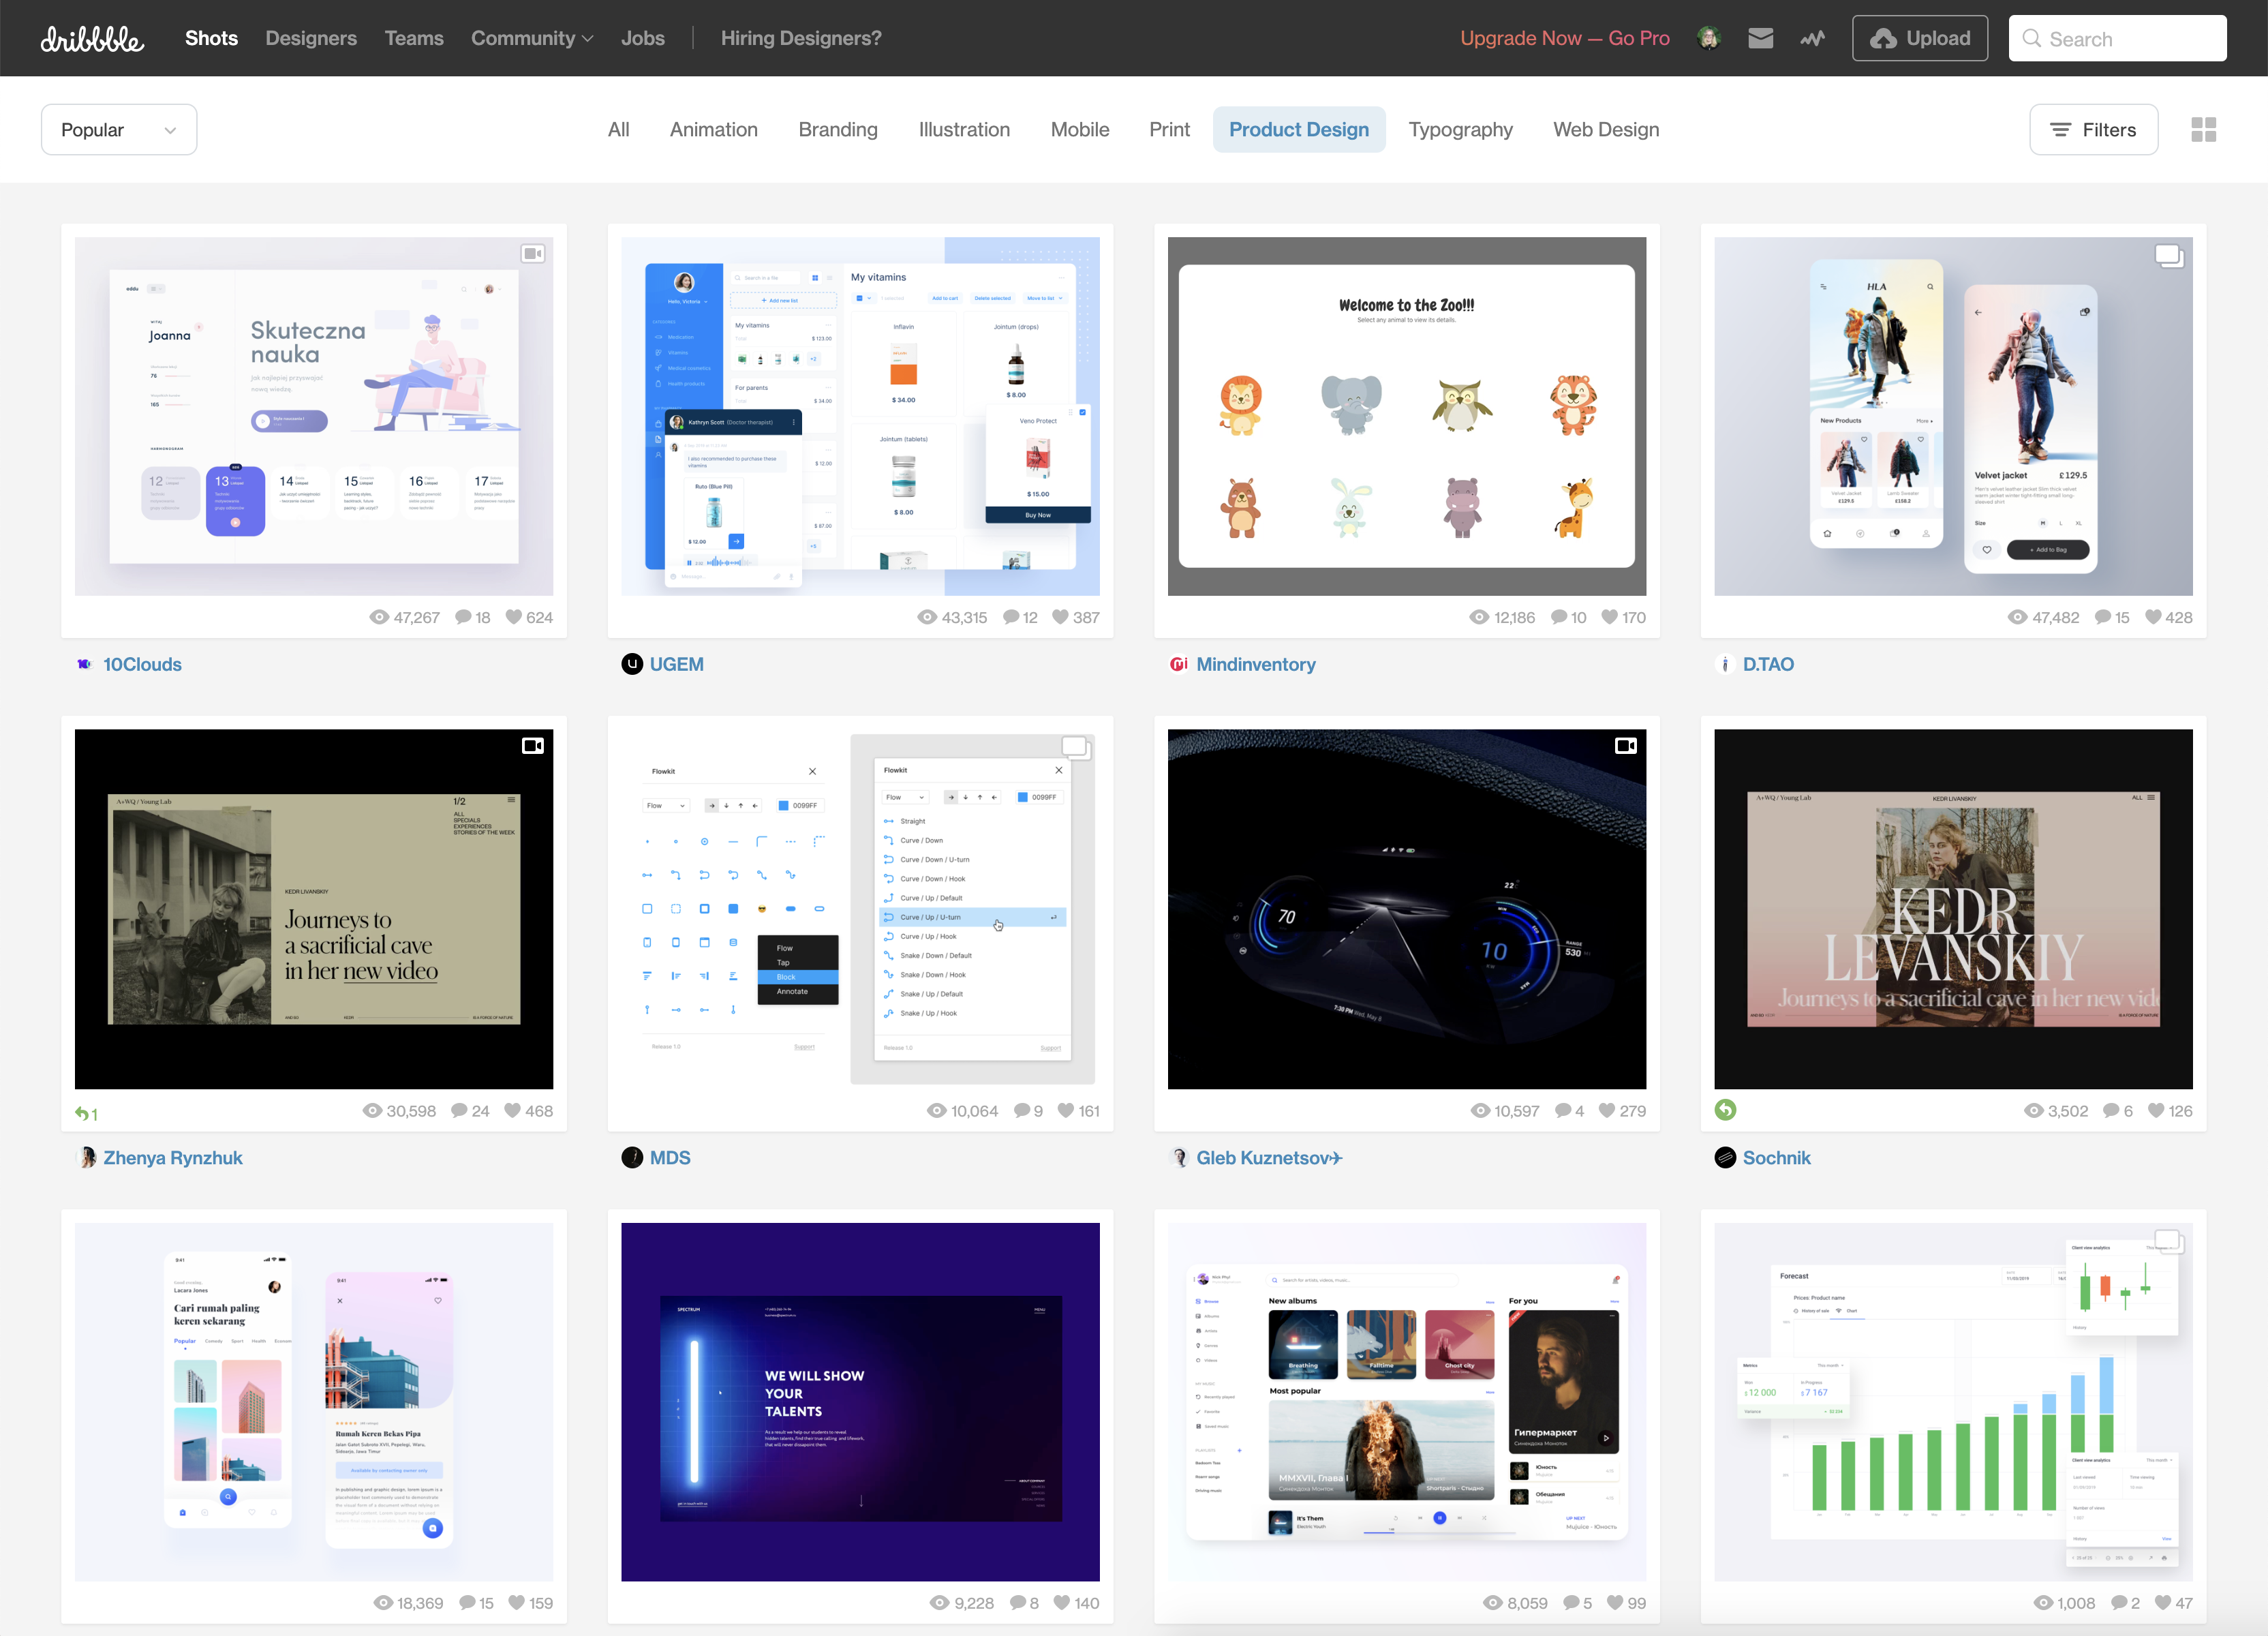 The front page of the website Dribbble, showing monochrome, minimalist websites.